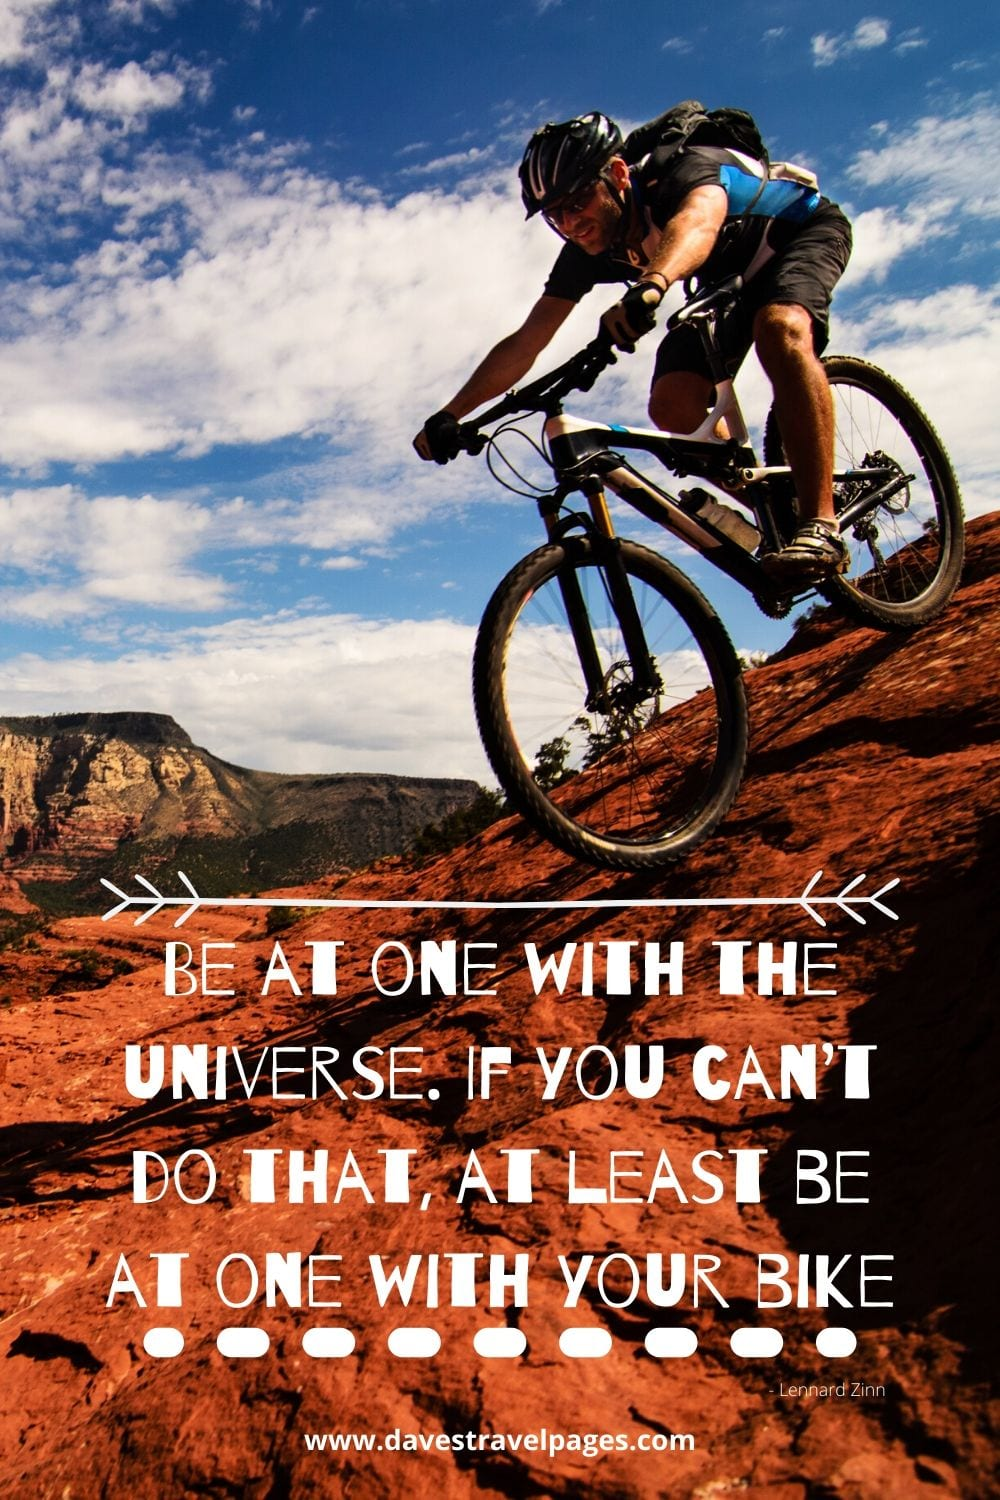 Peace, Harmony, Bicycles - Be at one with the universe. If you can't do that, at least be at one with your bike. ~ Lennard Zinn